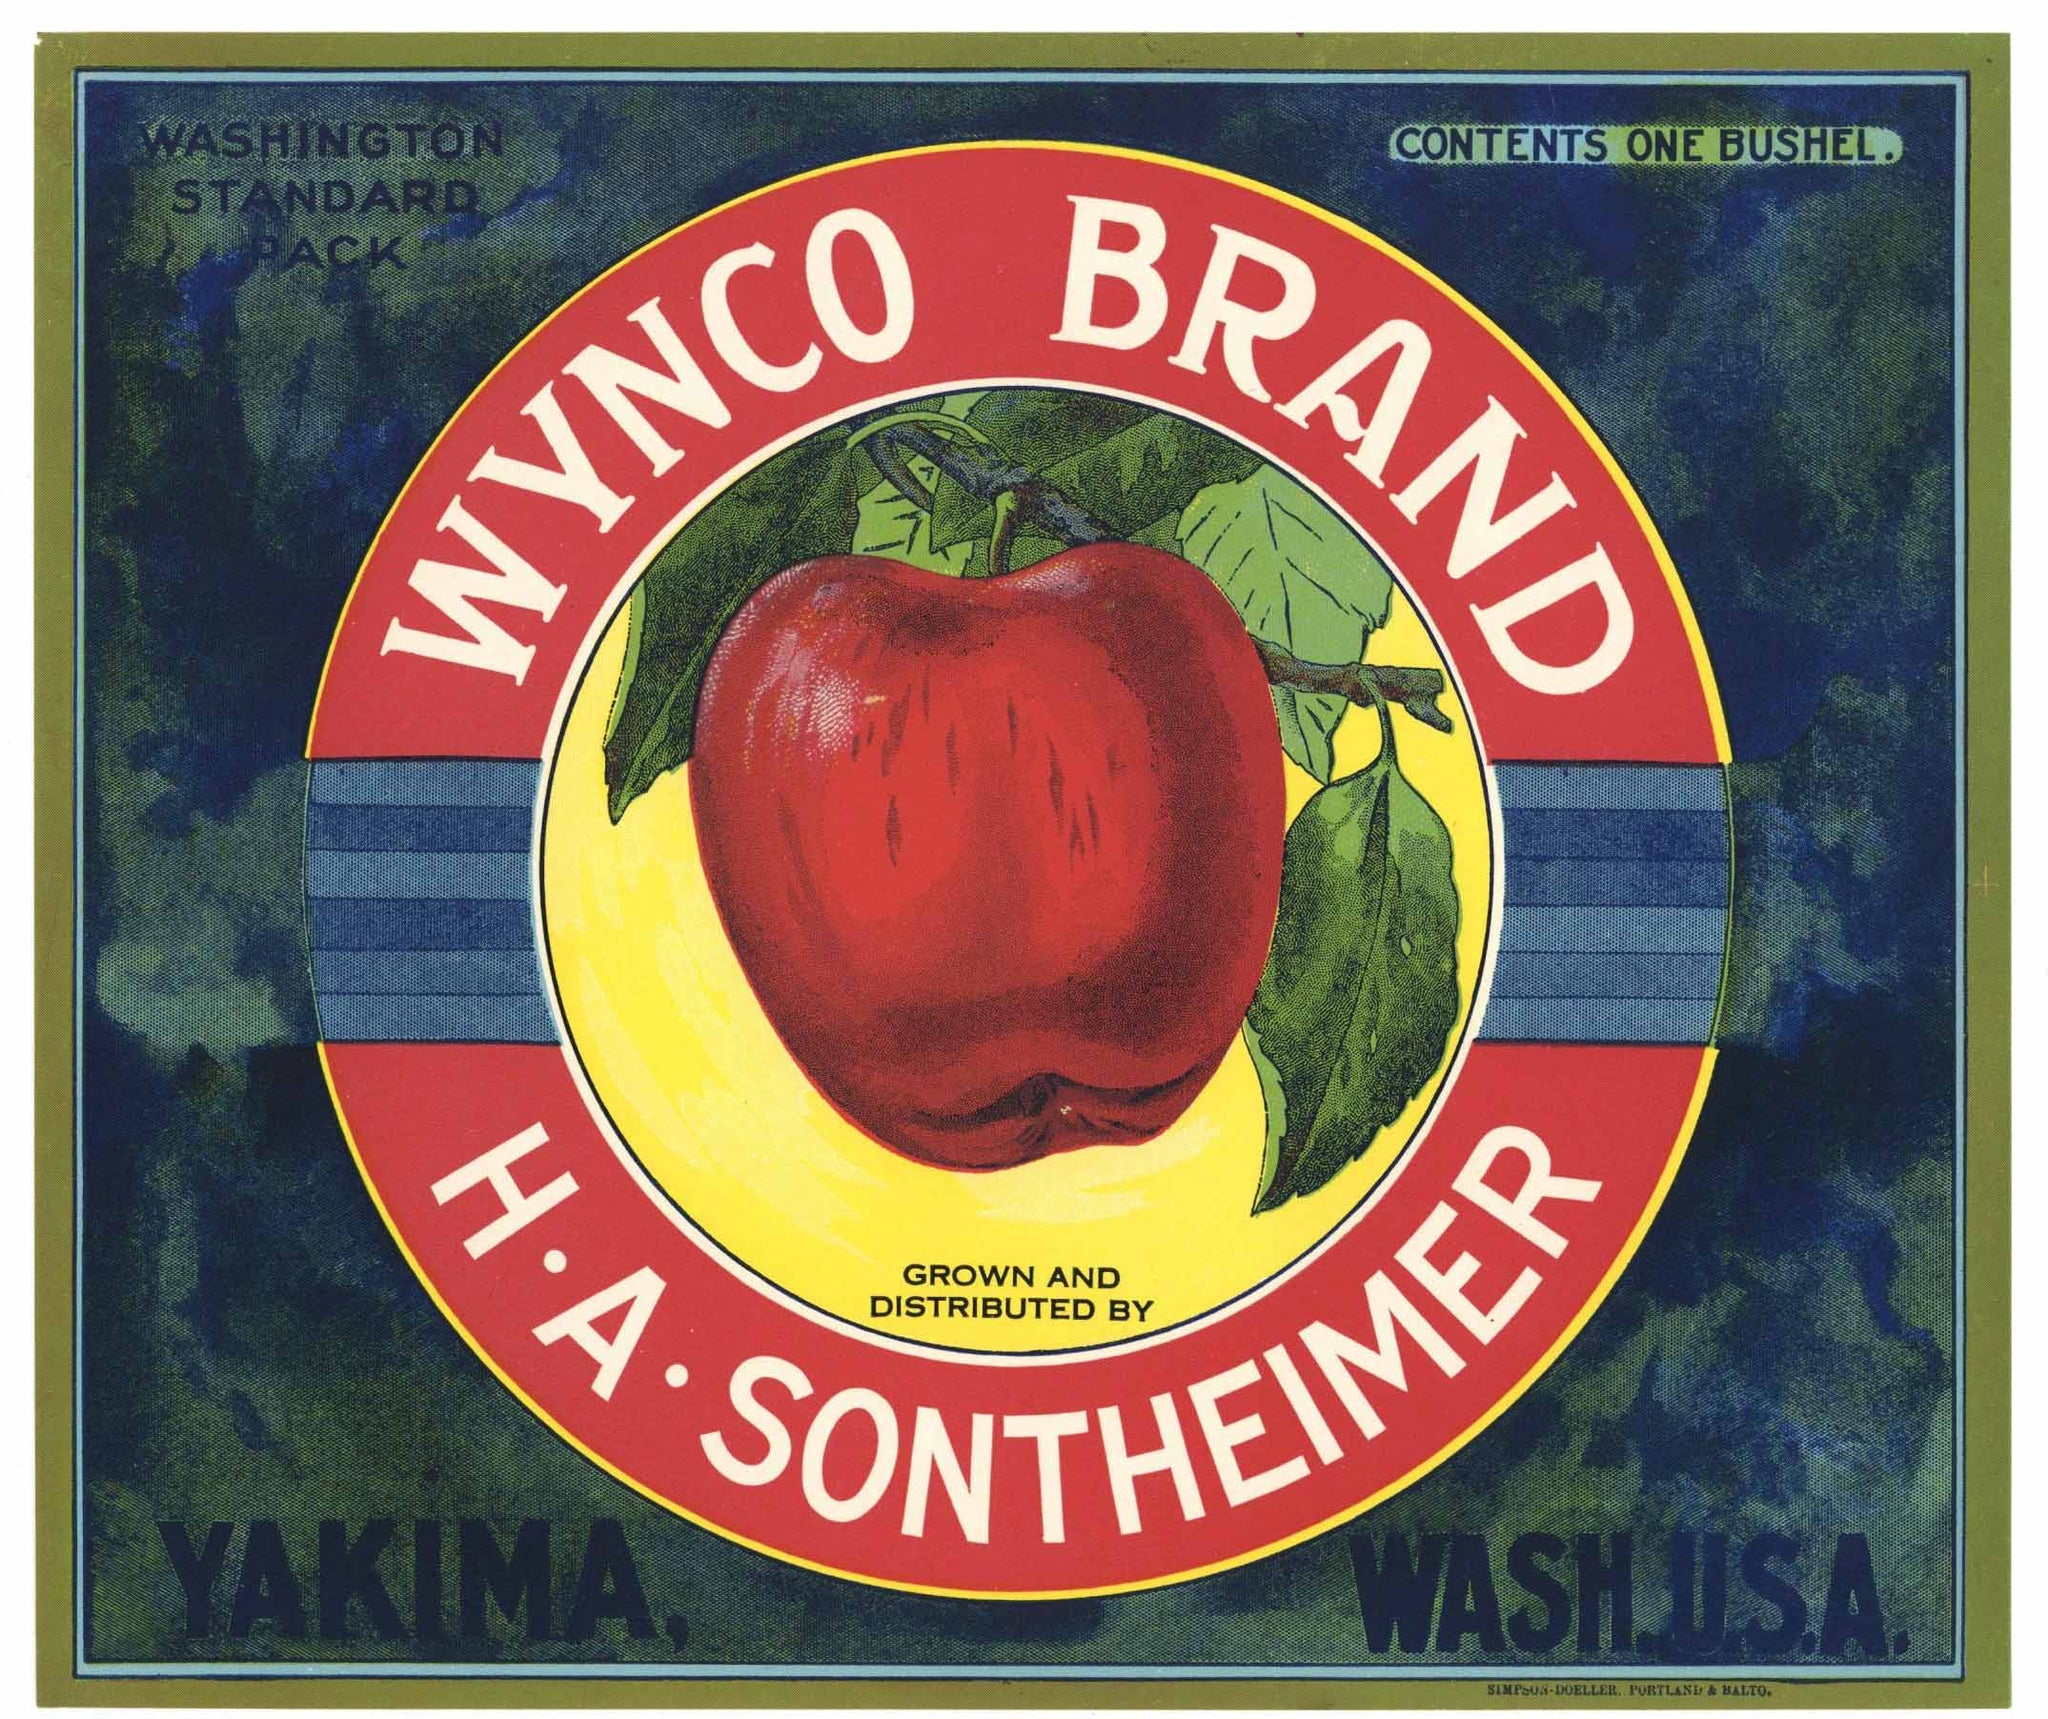 Wynco Brand Vintage Yakima Washington Apple Crate Label